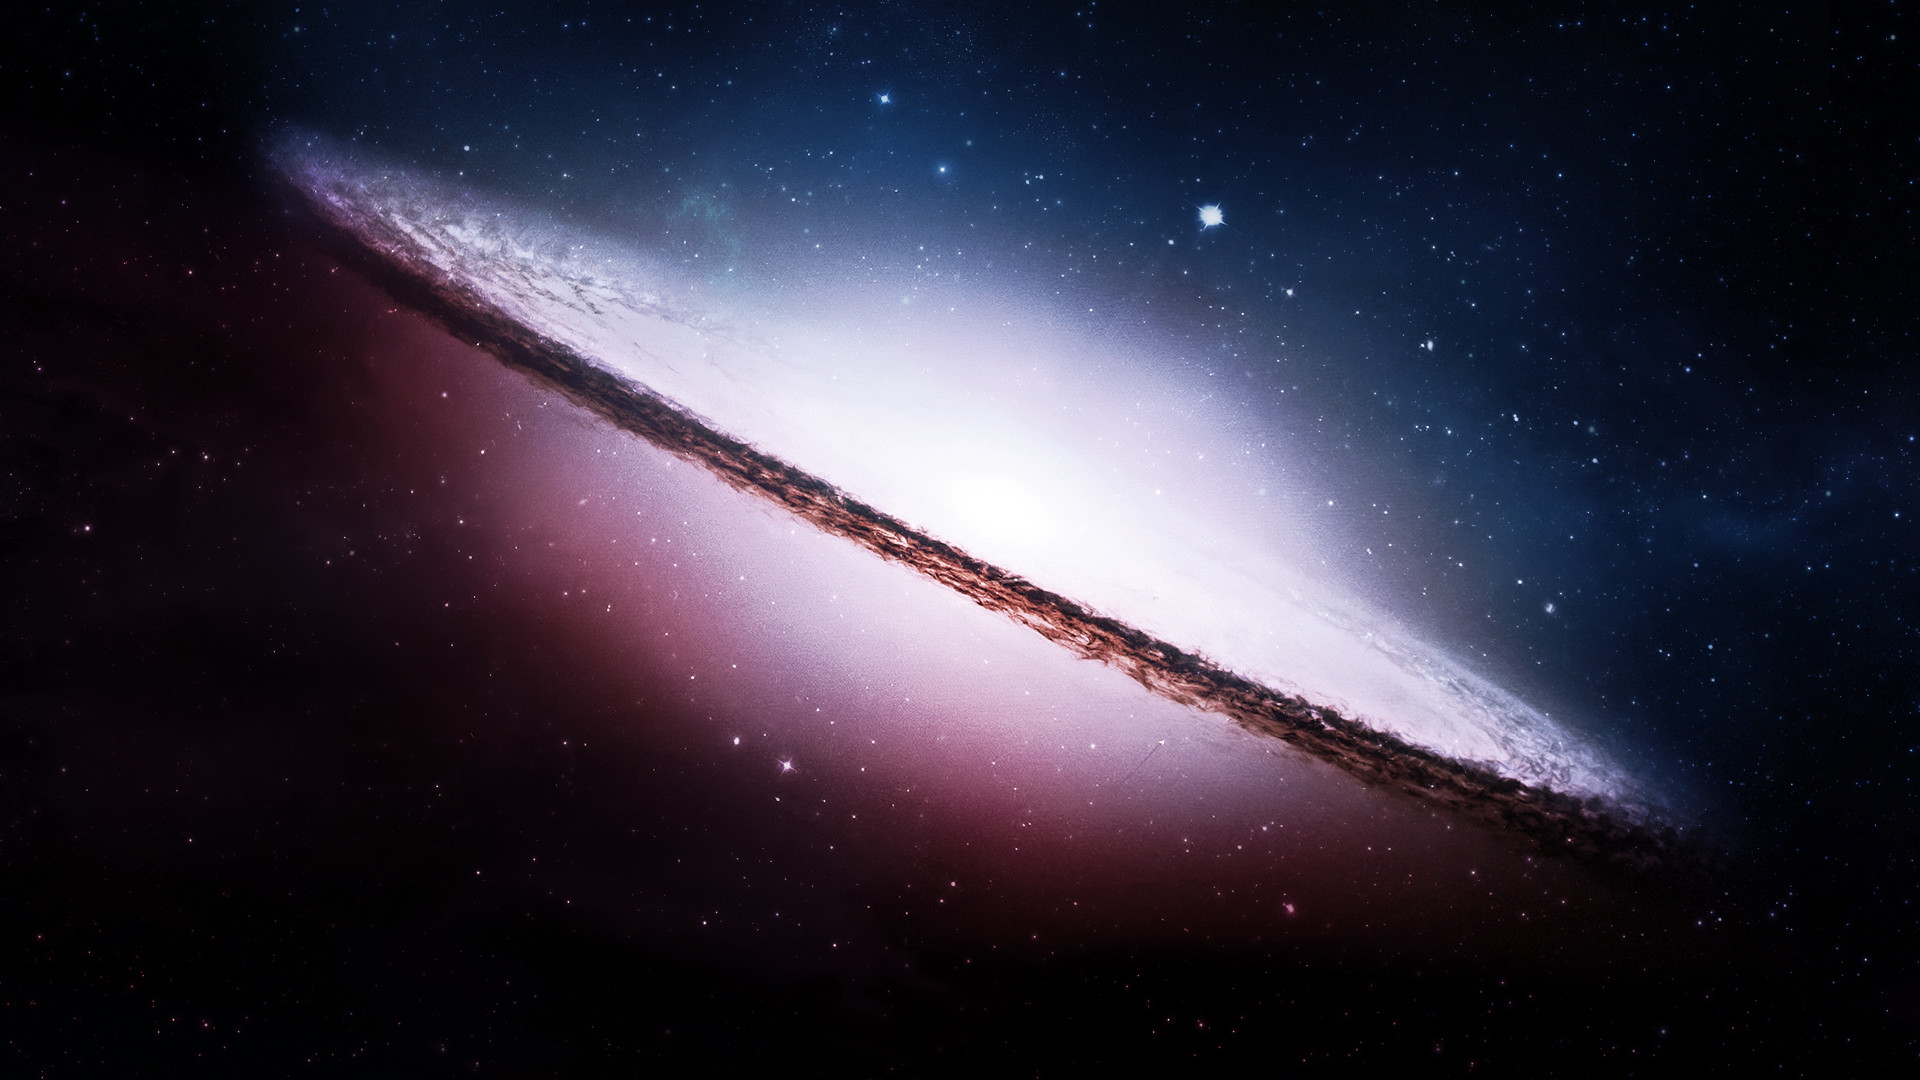 Galaxy HD Wallpapers 1080p (75+ images)